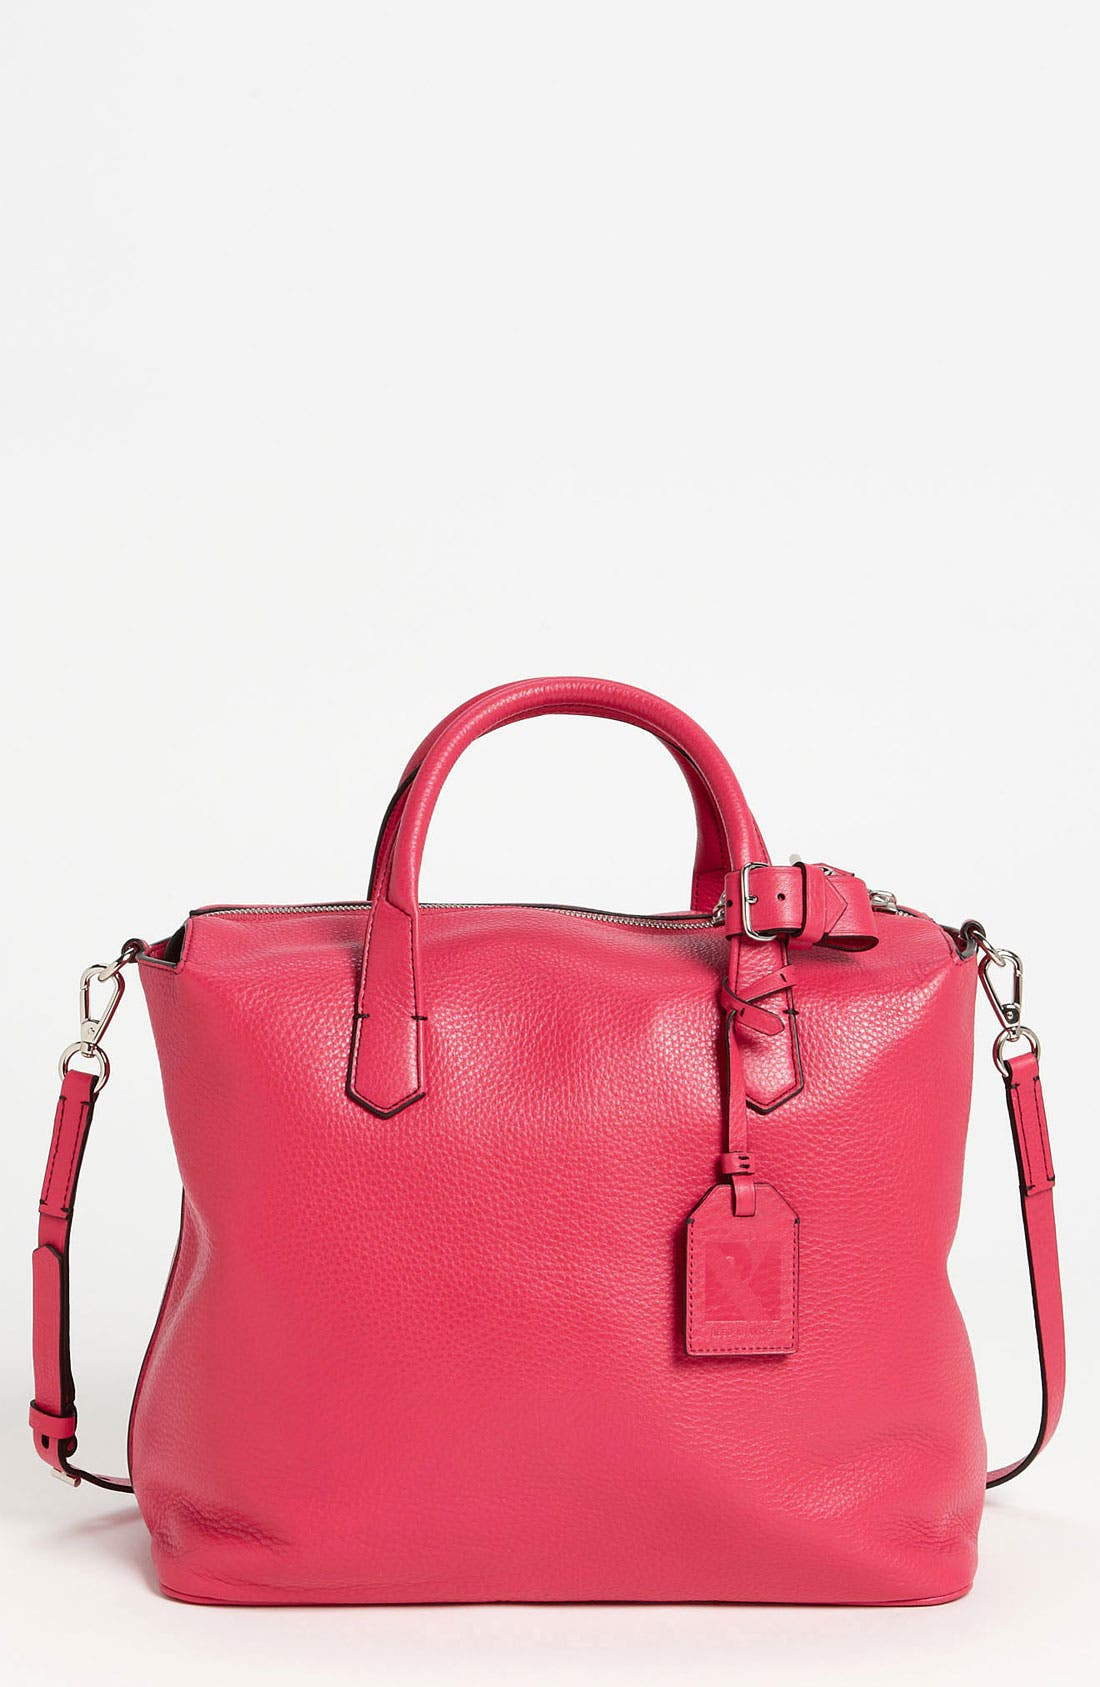 Alternate Image 1 Selected - Reed Krakoff 'Gym Bag' Leather Satchel